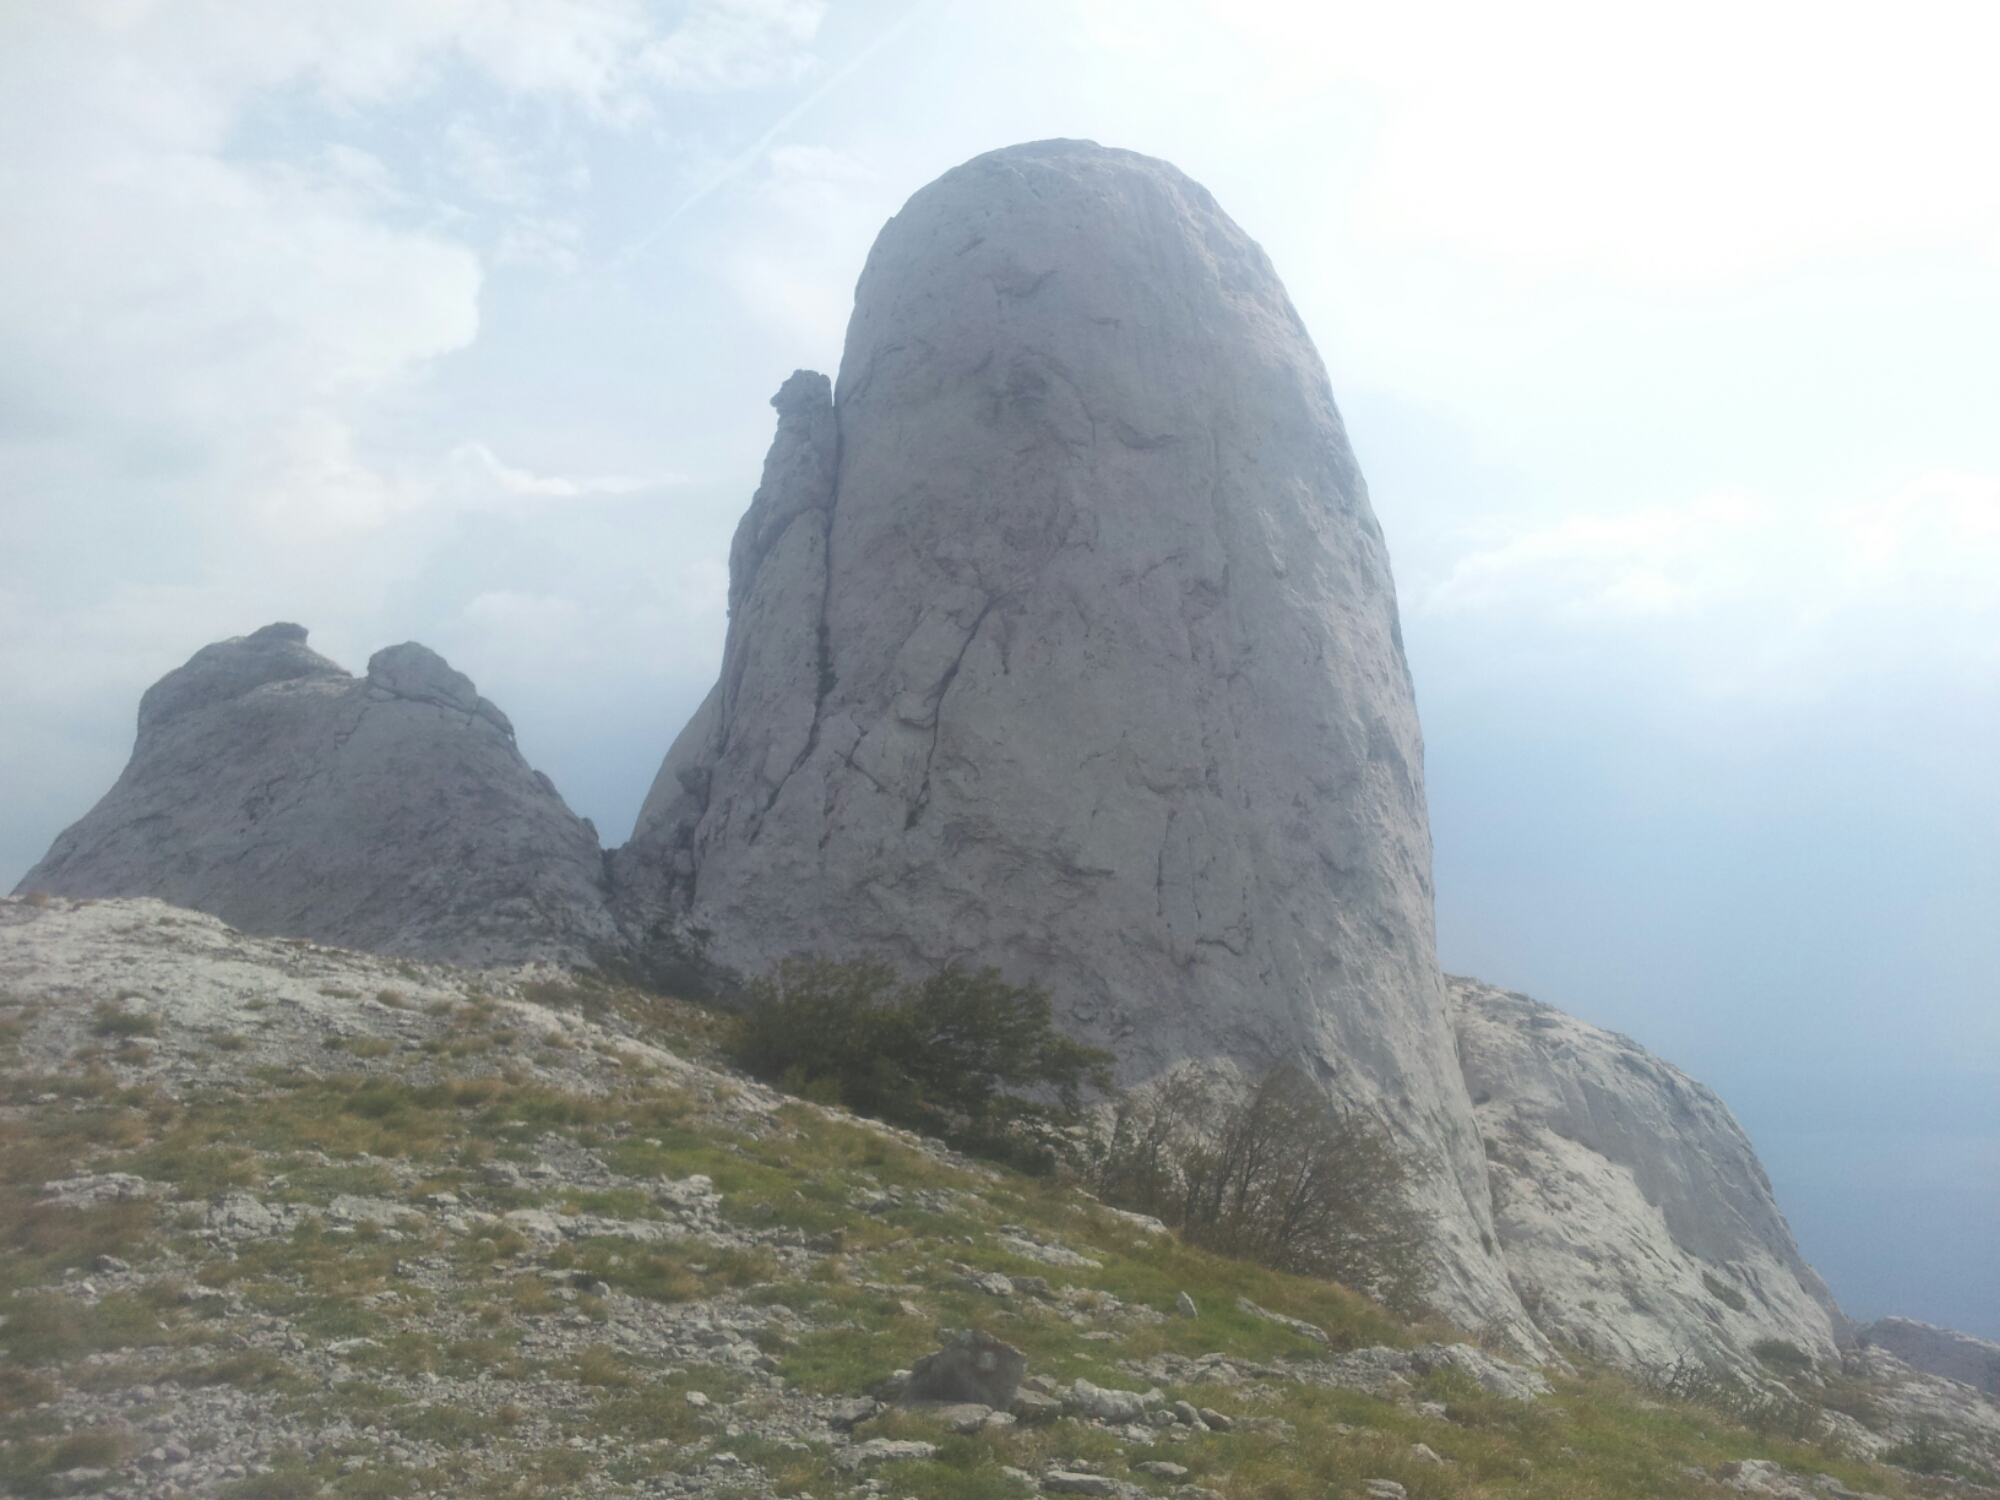 Stapina-velebitski-planinarski-put-hiking-via-dinarica-white-trail-croatia